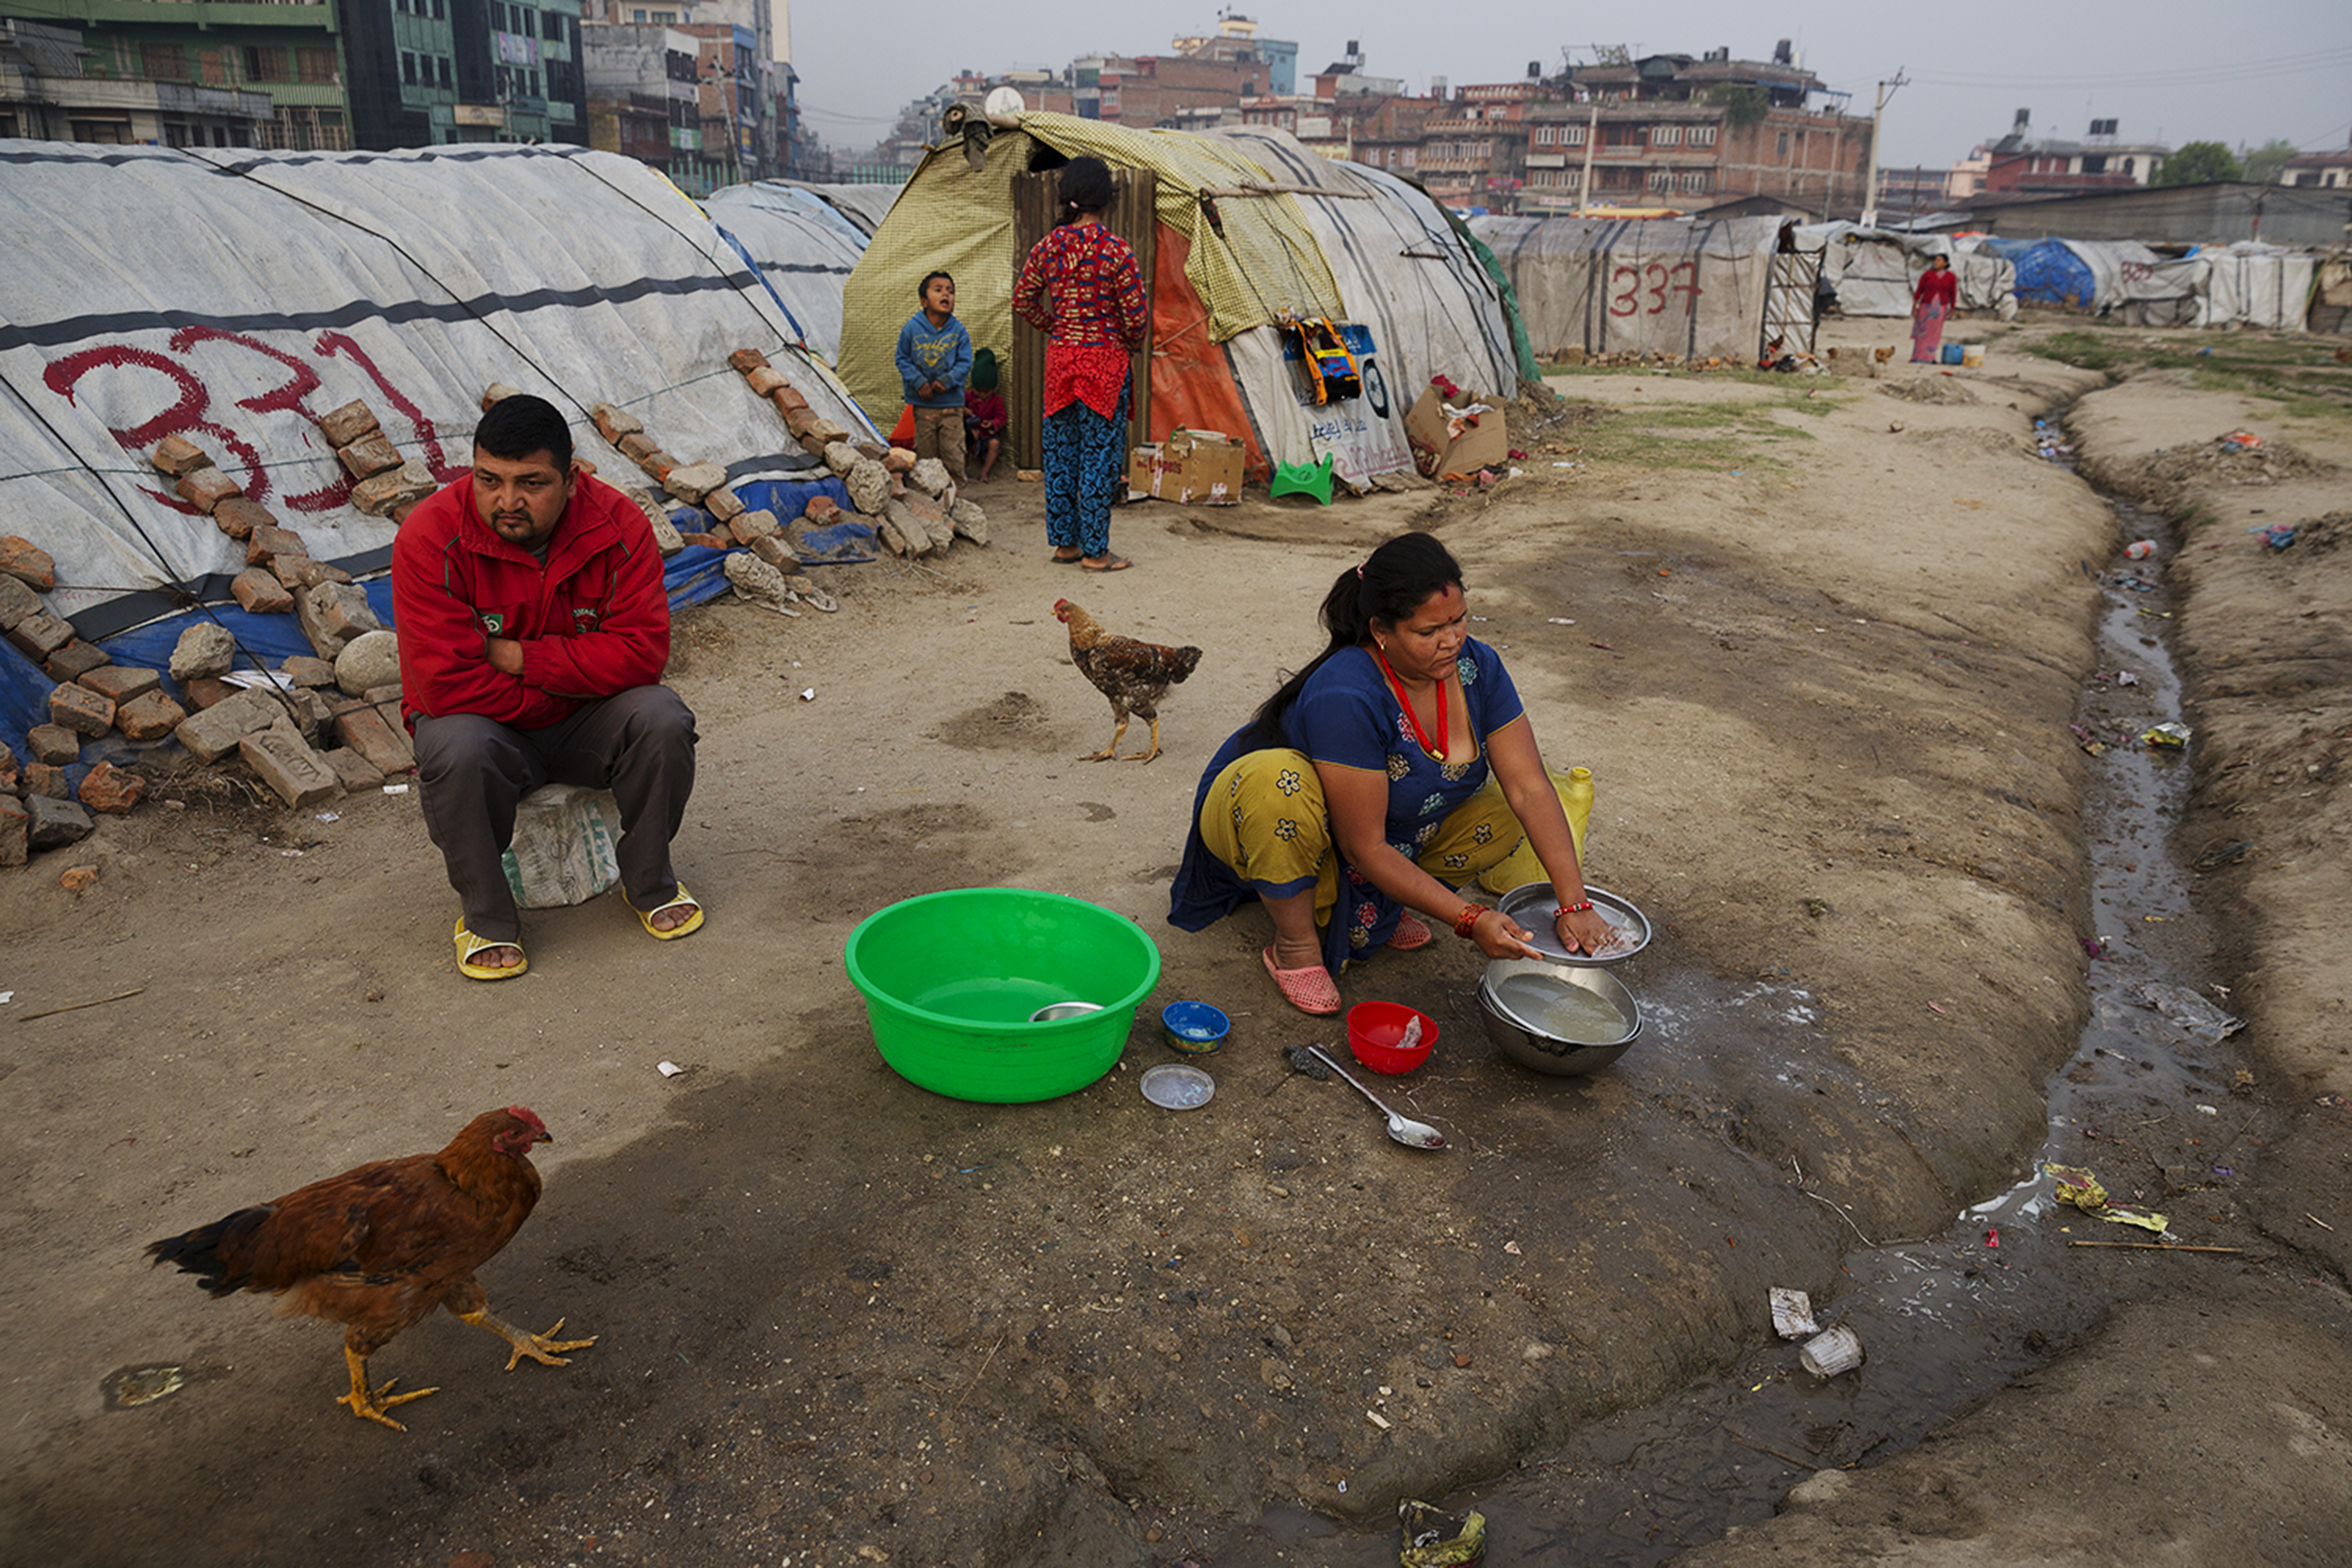 A family sits in an Informal tent encampment in central Kathmandu, Nepal. Approaching the first anniversary of the  quakes of 2015, many people have been living in the squalid conditions of the camp for the past year.  Some residents of the camp are from towns and villages in the region of Kathmandu, while others, some of whom are Nepalese migrant workers, are from more distant areas, March 31, 2016.